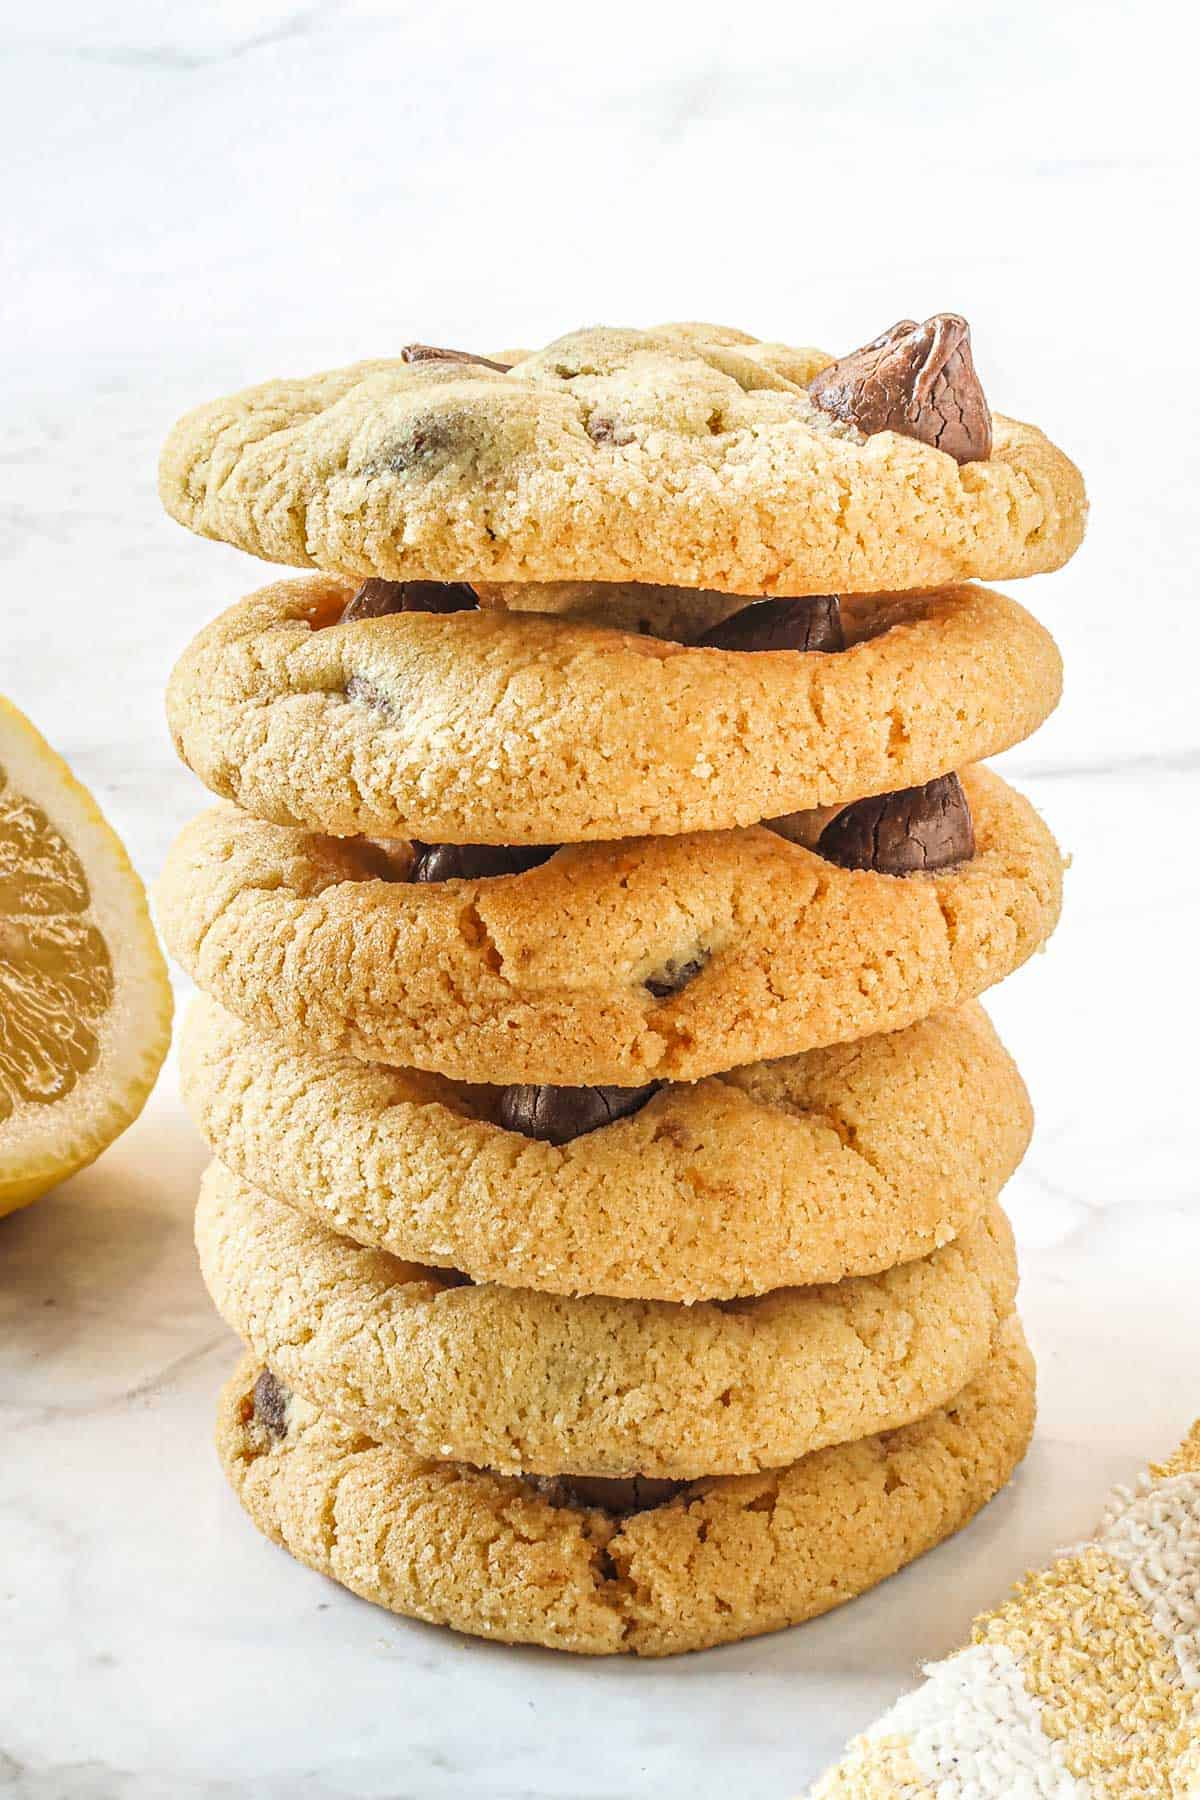 Lemon chocolate chip cookies stacked on one another